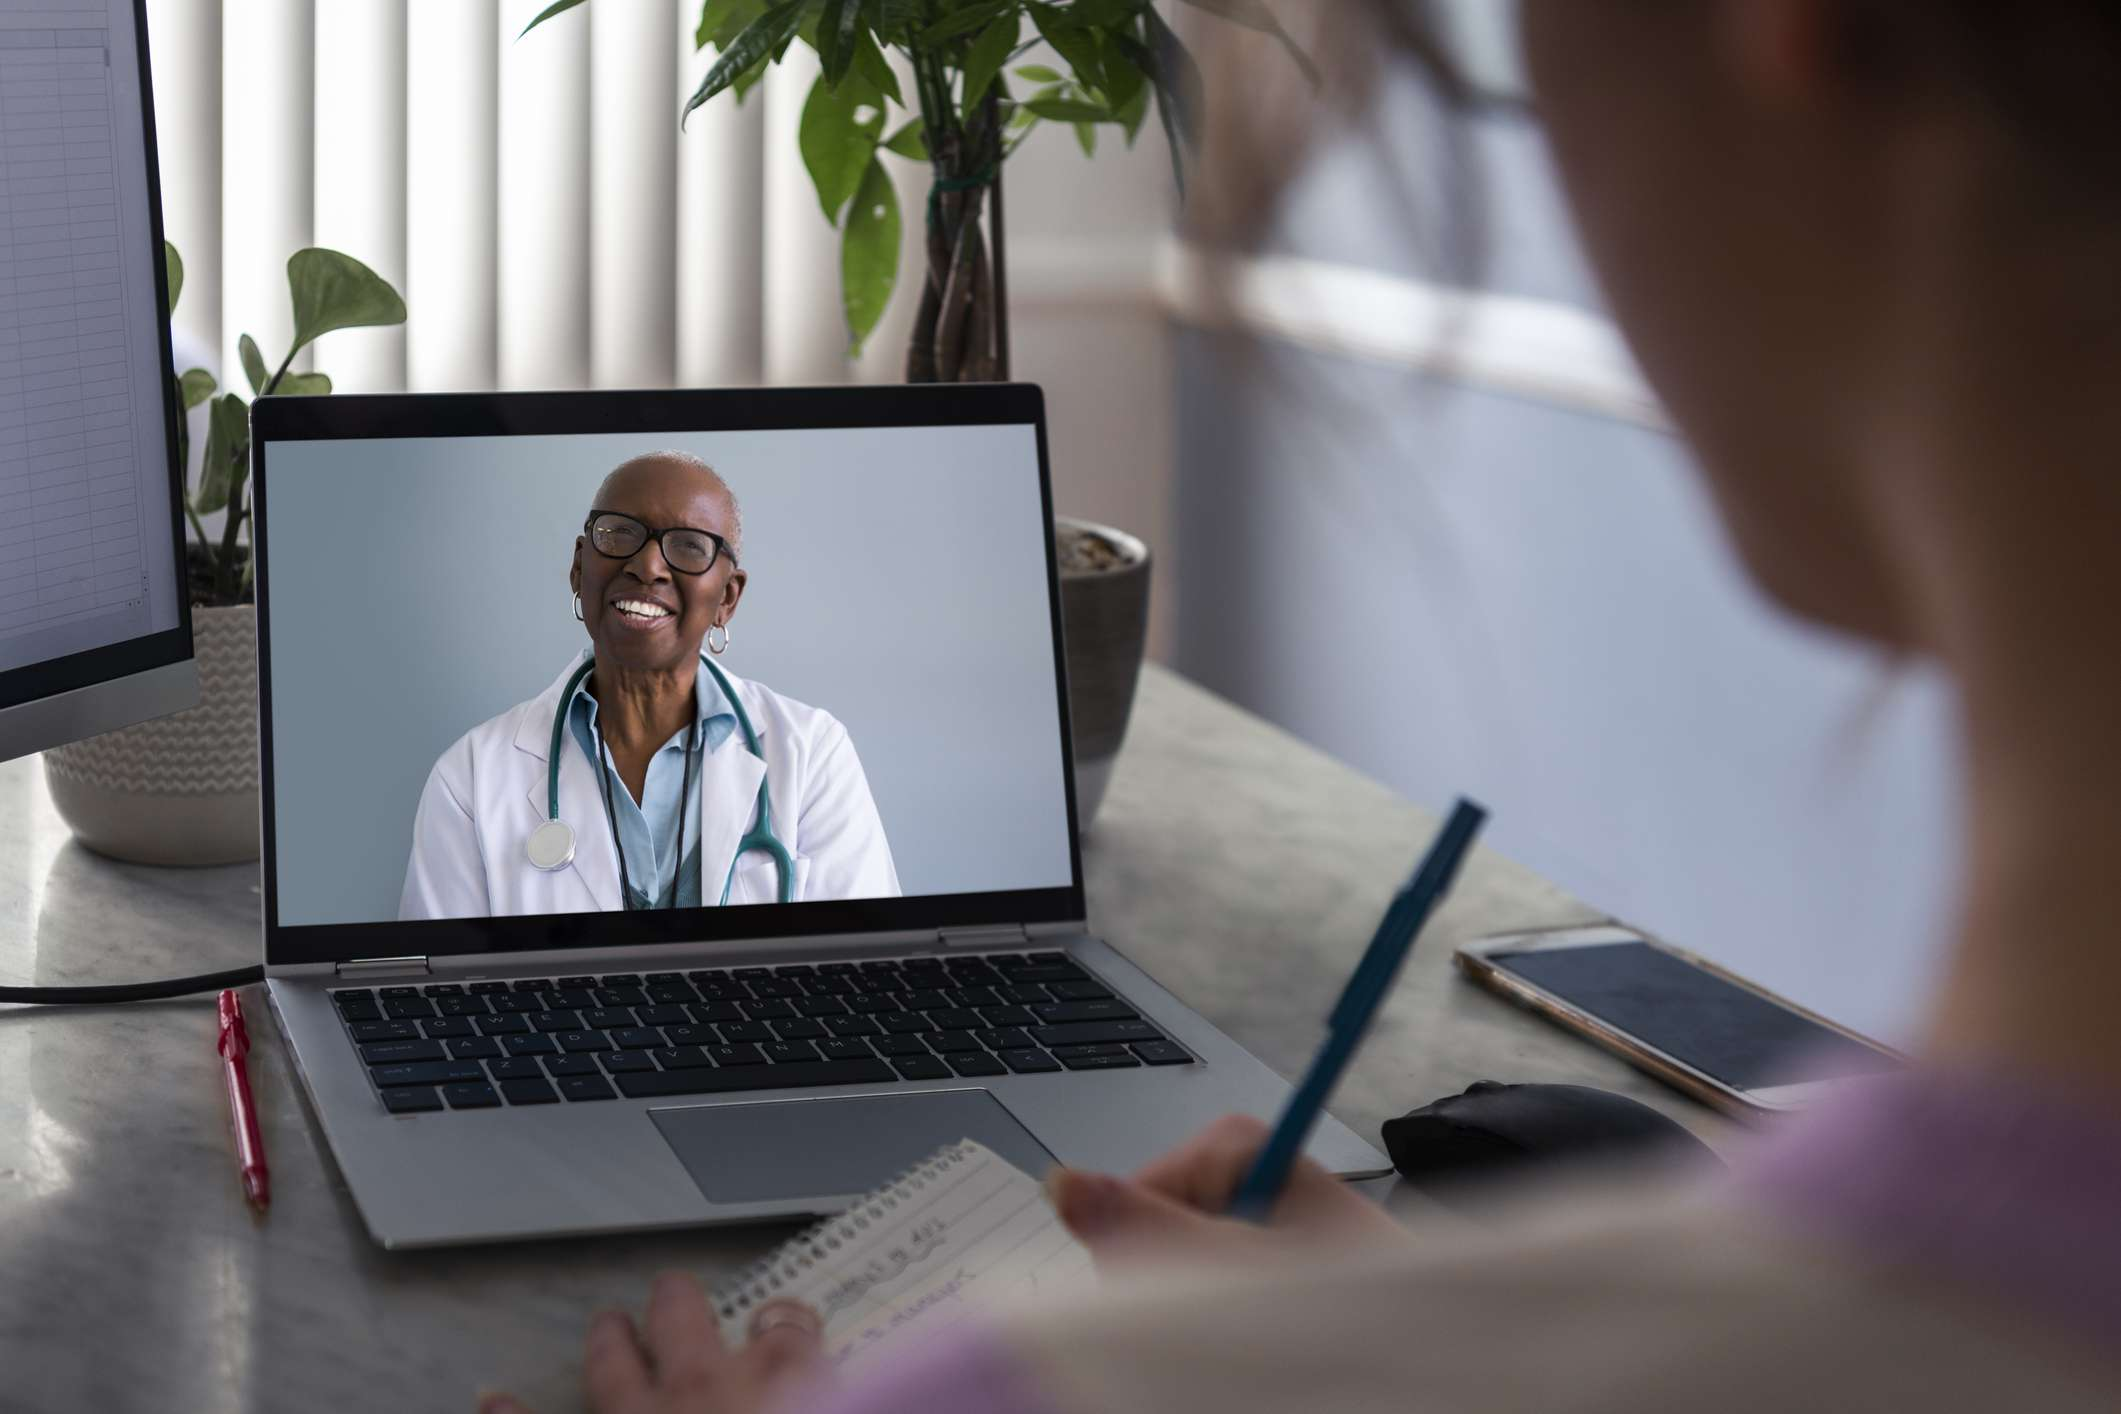 A woman talking to doctor on a video call on a laptop